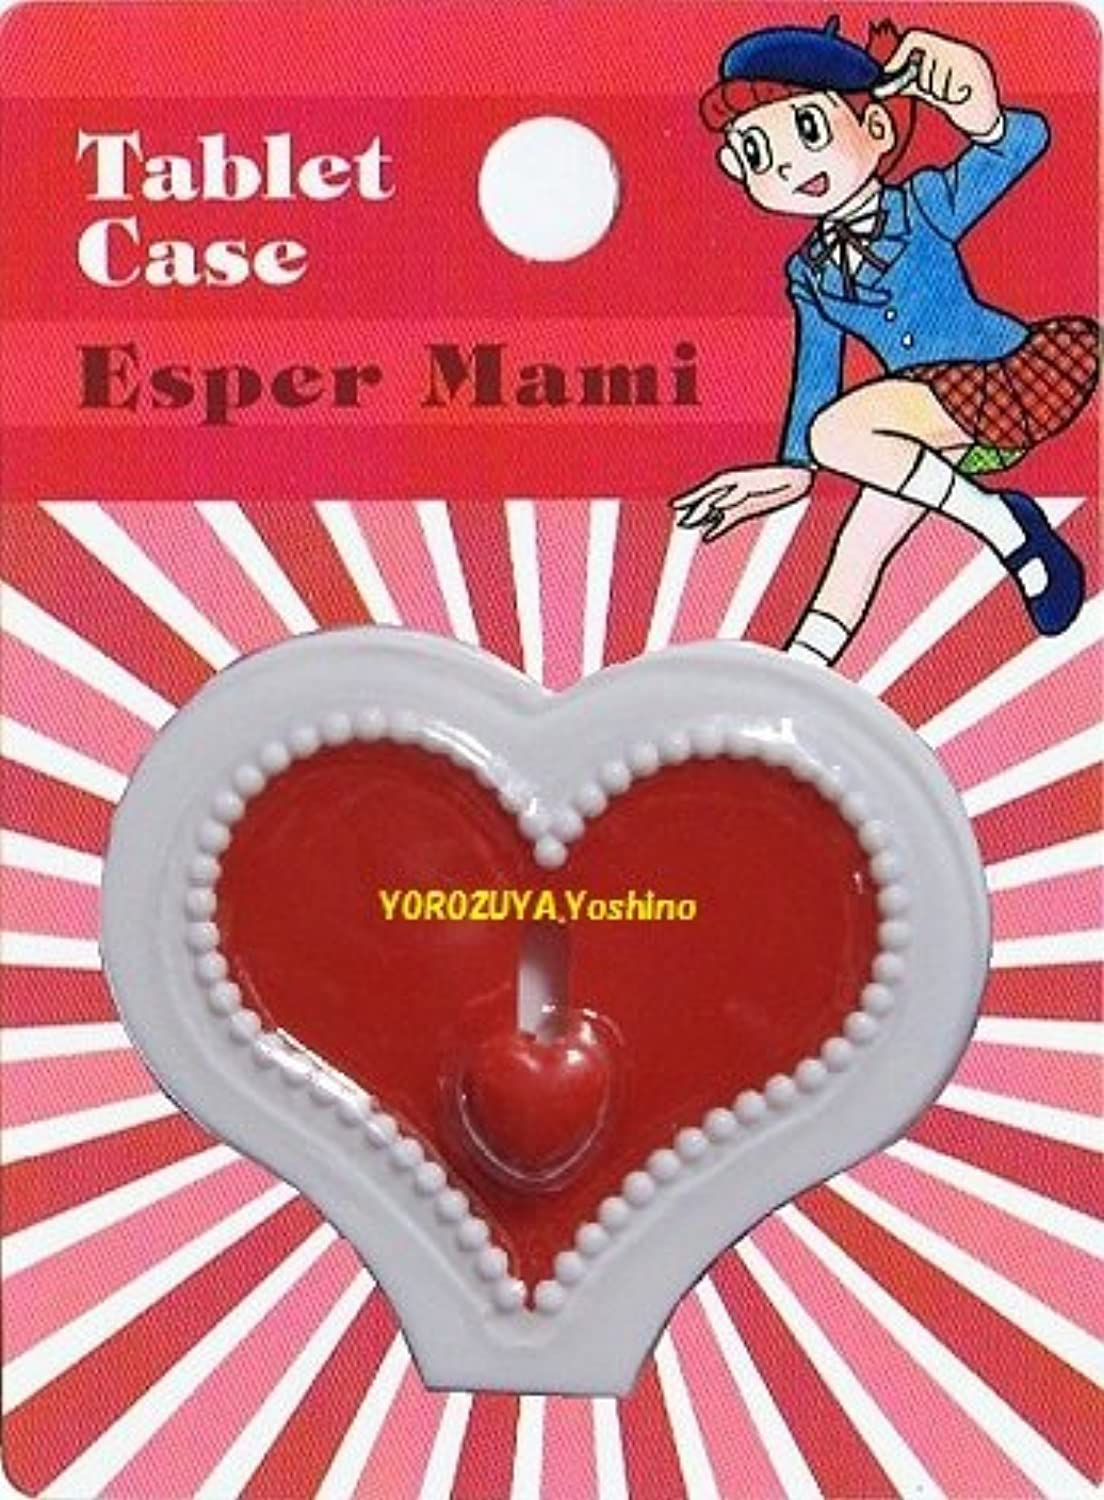 Kawasaki City Fujiko F Fujio Museum Esper Magic beauty tablet case [heartshaped brooch  teleportation gun] (japan import)